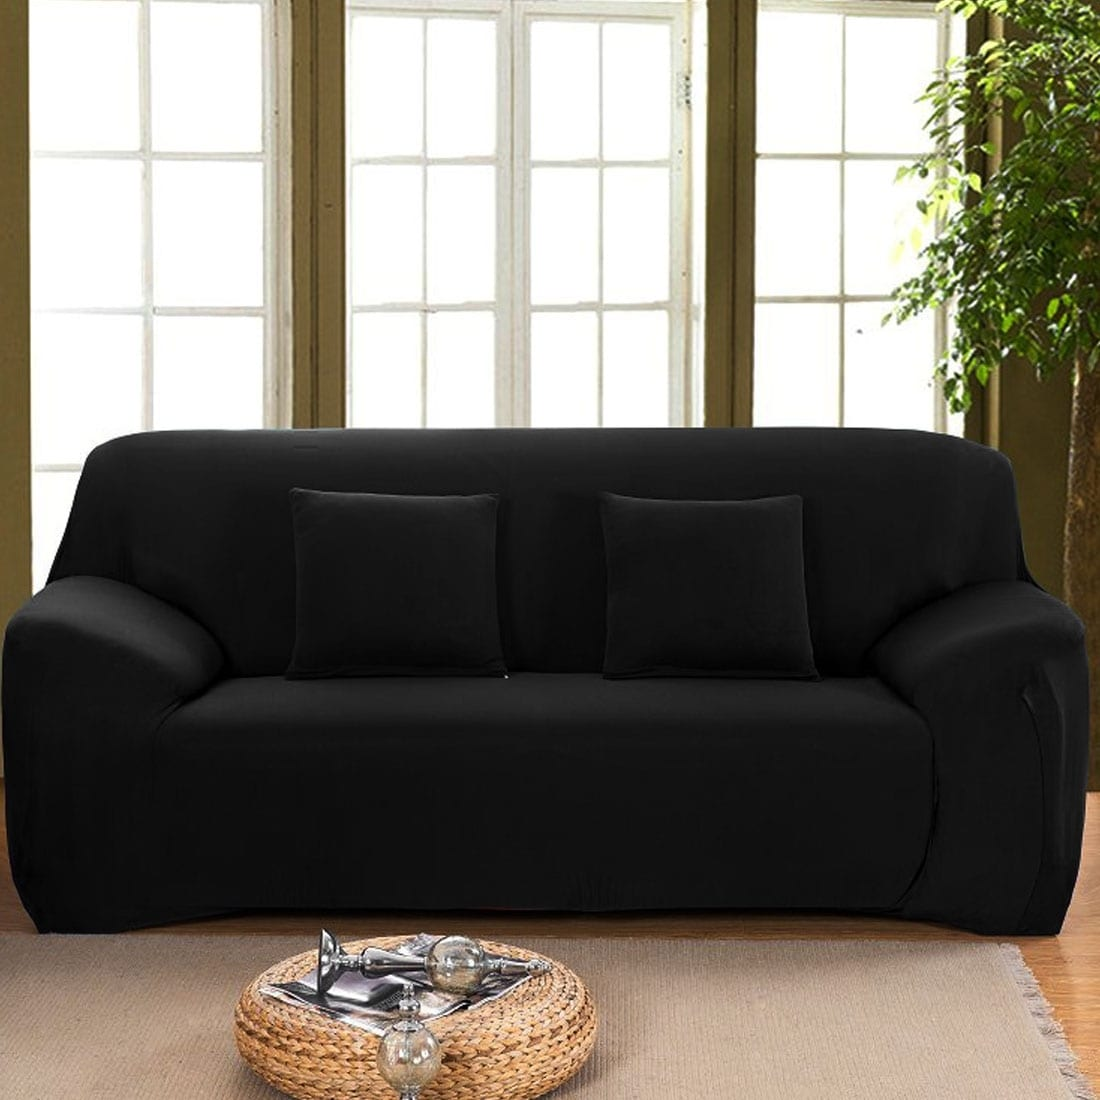 Big Sofa Usa Buy Sofa Couch Slipcovers Online At Overstock Our Best